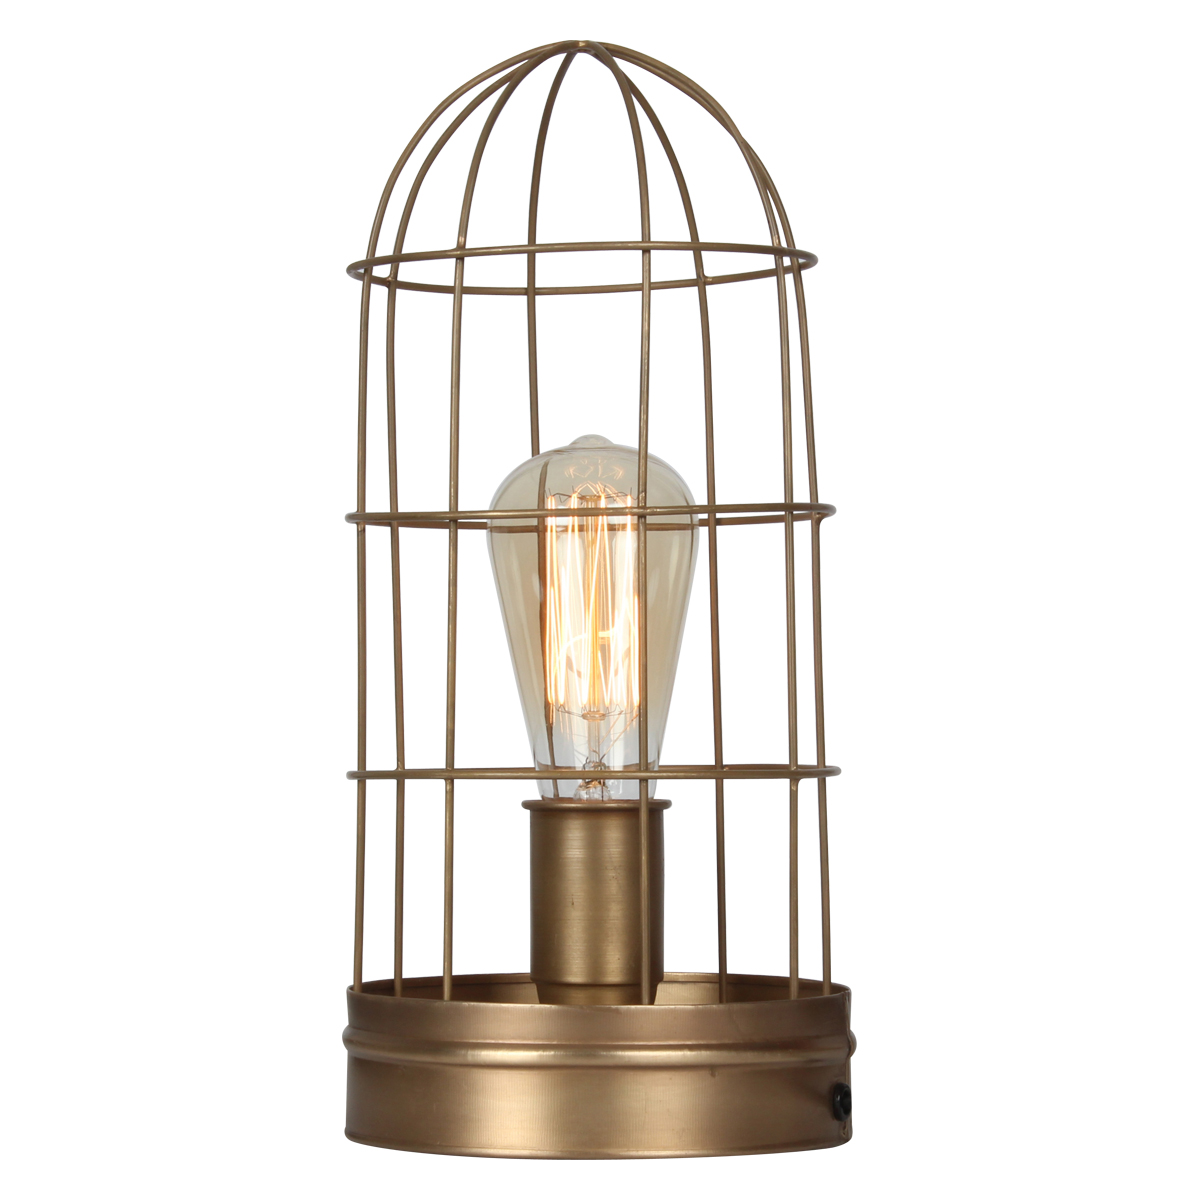 Grillage Industriel Lampe Grillagée Style Industrielle Couleur Bronze